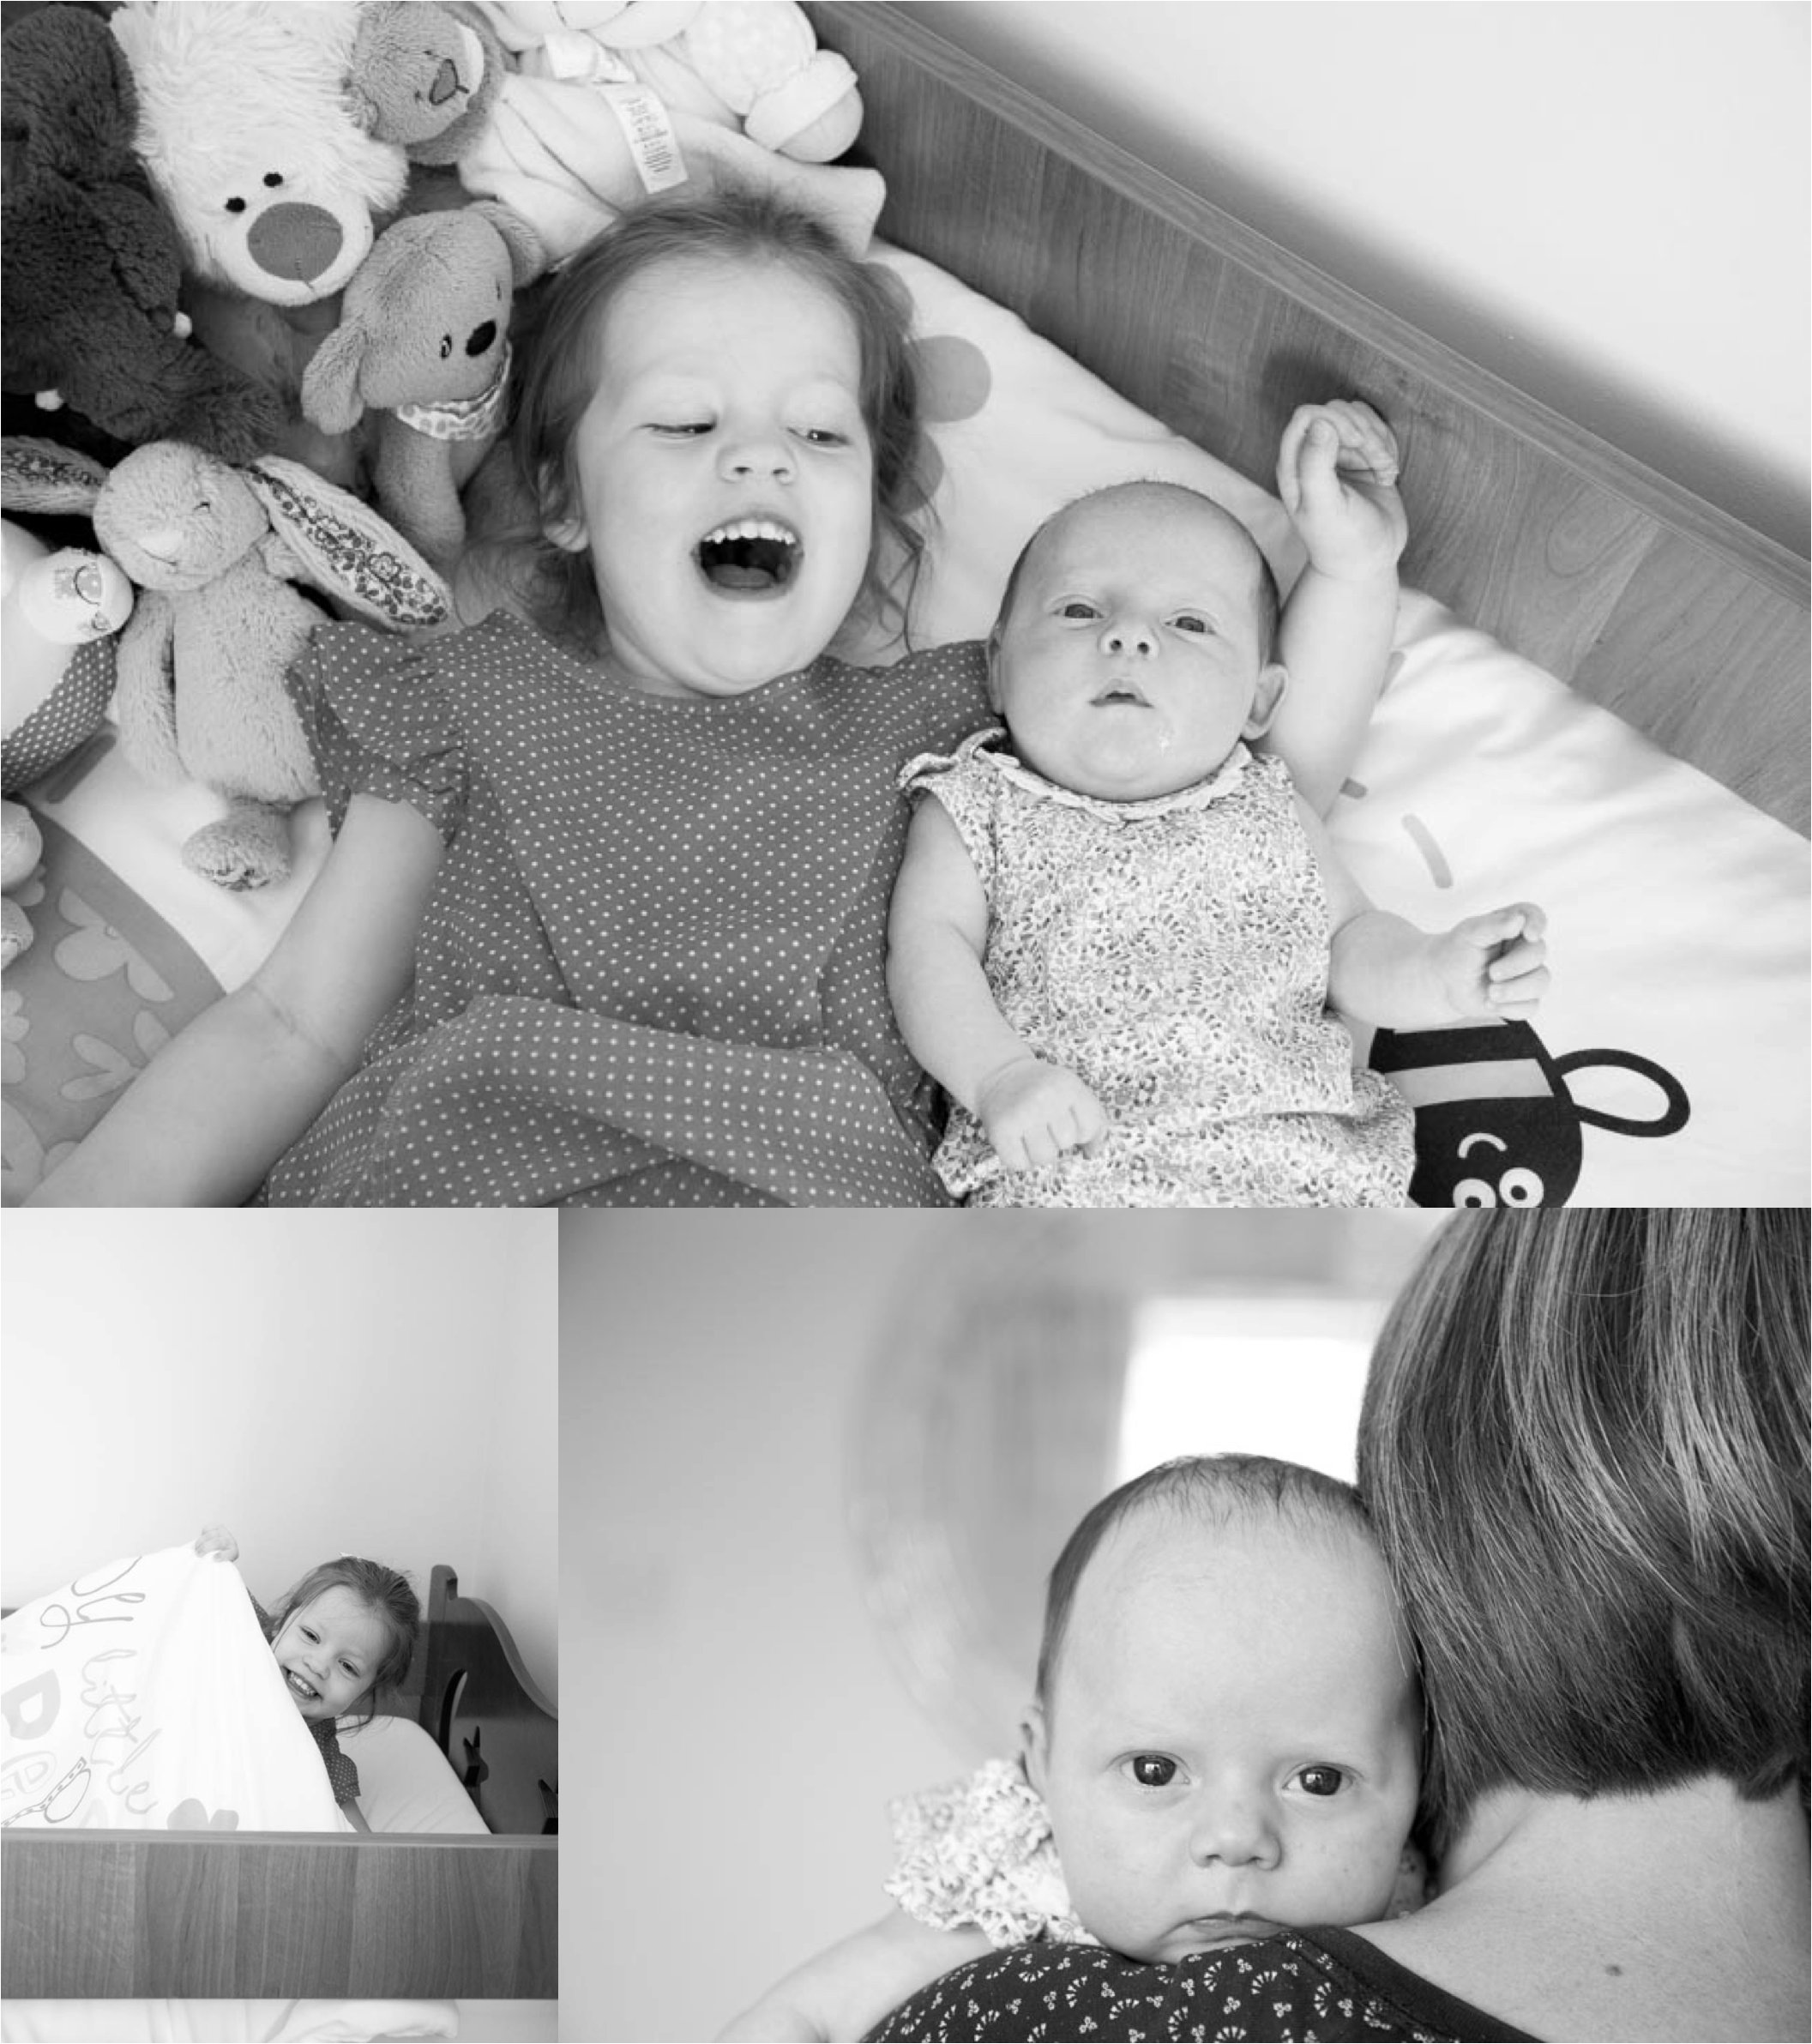 Relaxed childrens photography in black and white, bury st edmunds suffolk